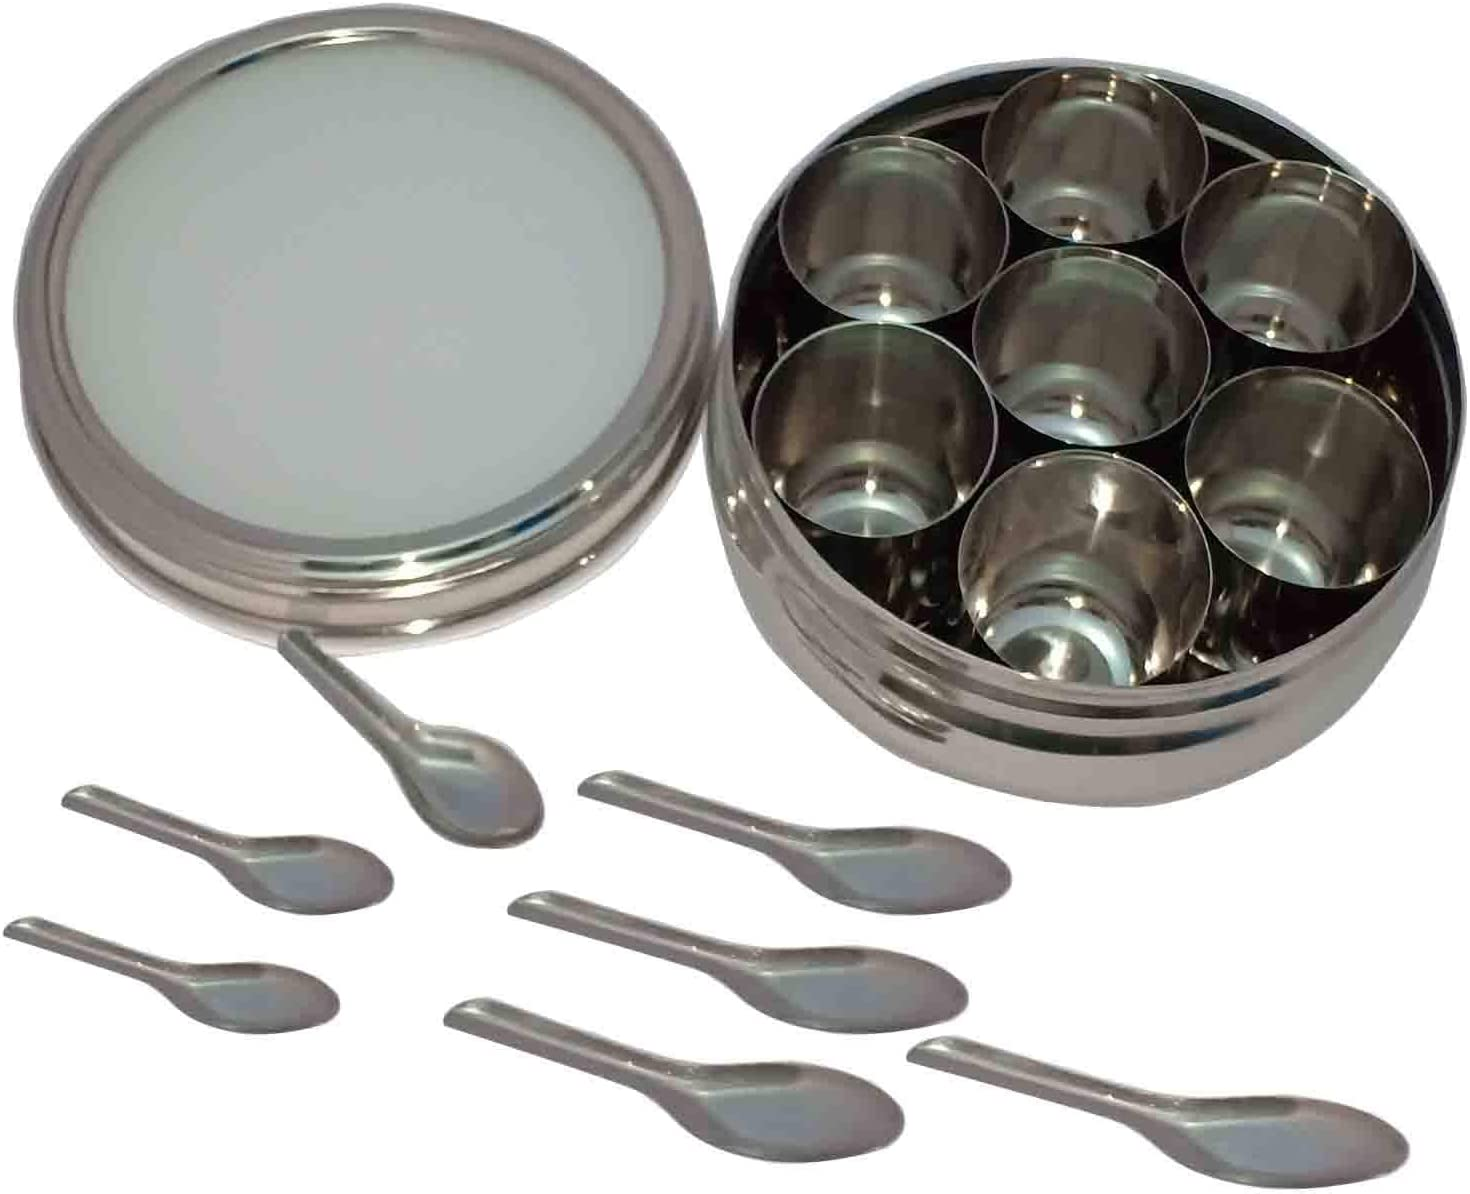 7 Compartments stainless steel spice box indian masala dabba Stainless Steel Masala Dabba Spice Container Box with 7 Spoons Kitchen Spice Box Spice Box G/&D Masala Dabba Transparent Lid masala box